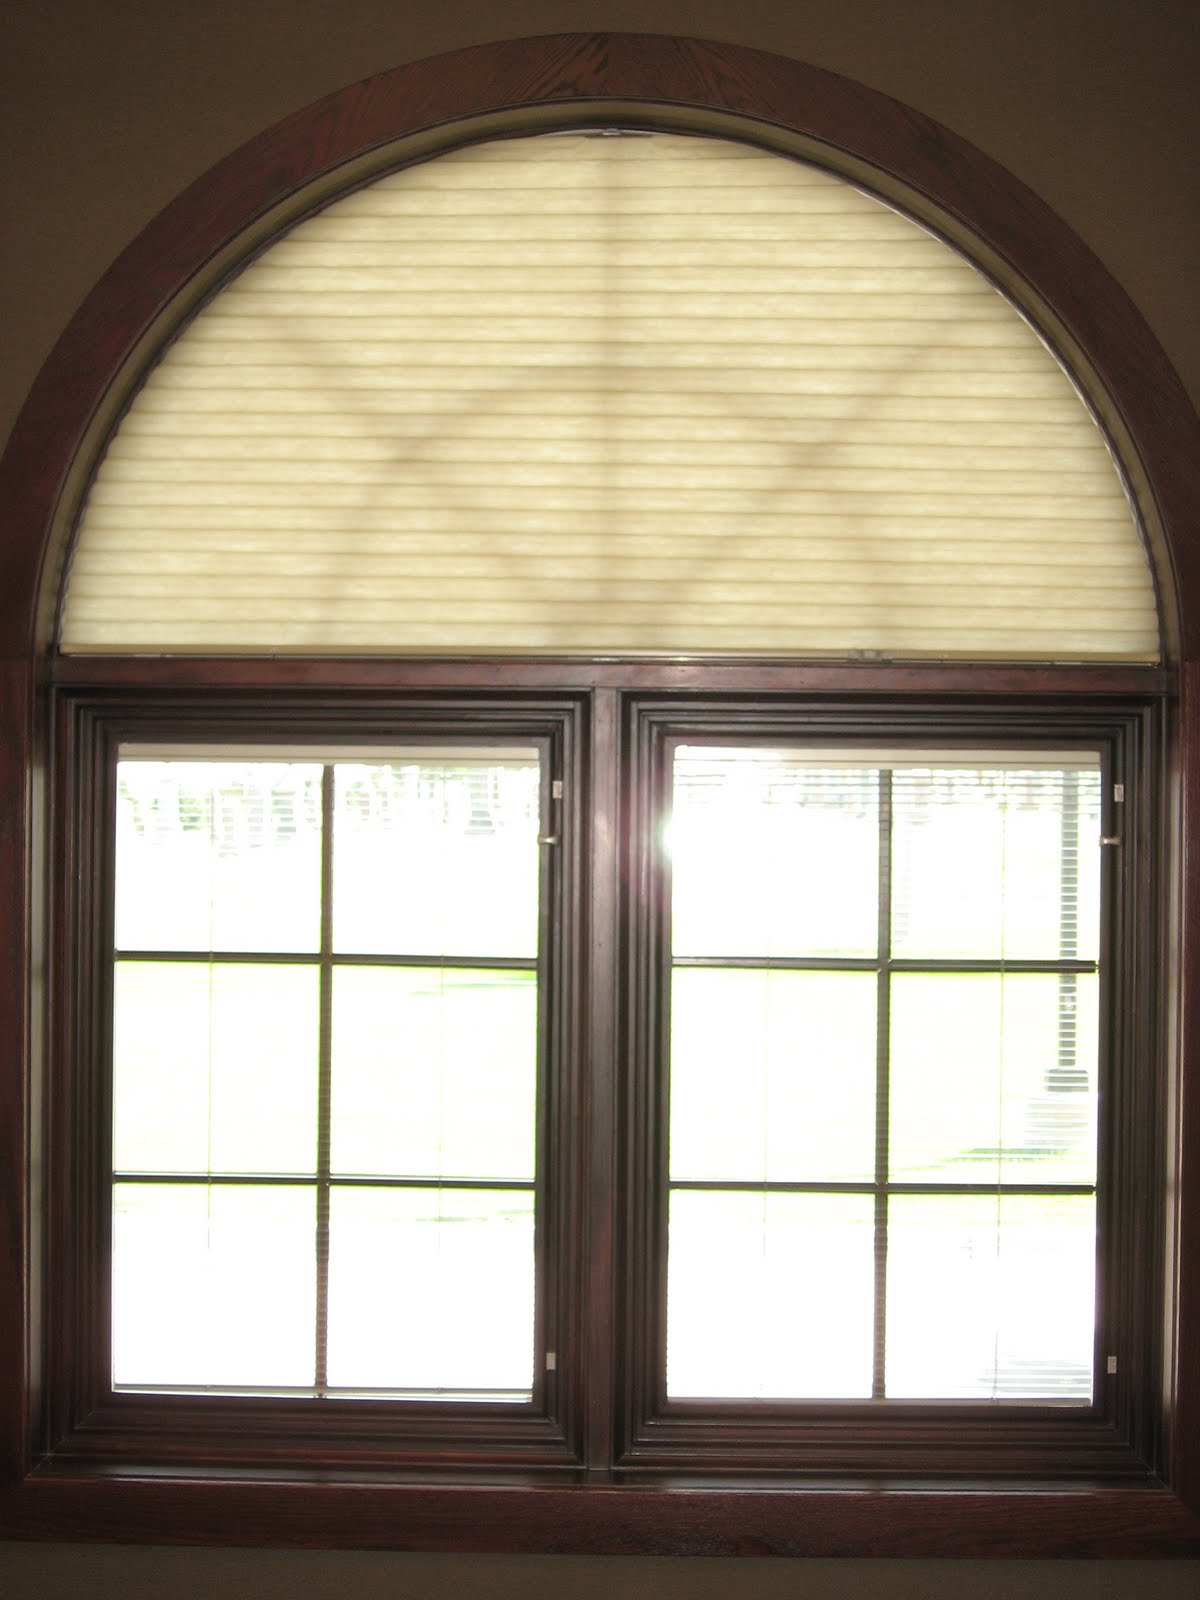 Window Fashions Duette Honeycomb Shades Easy View Arch